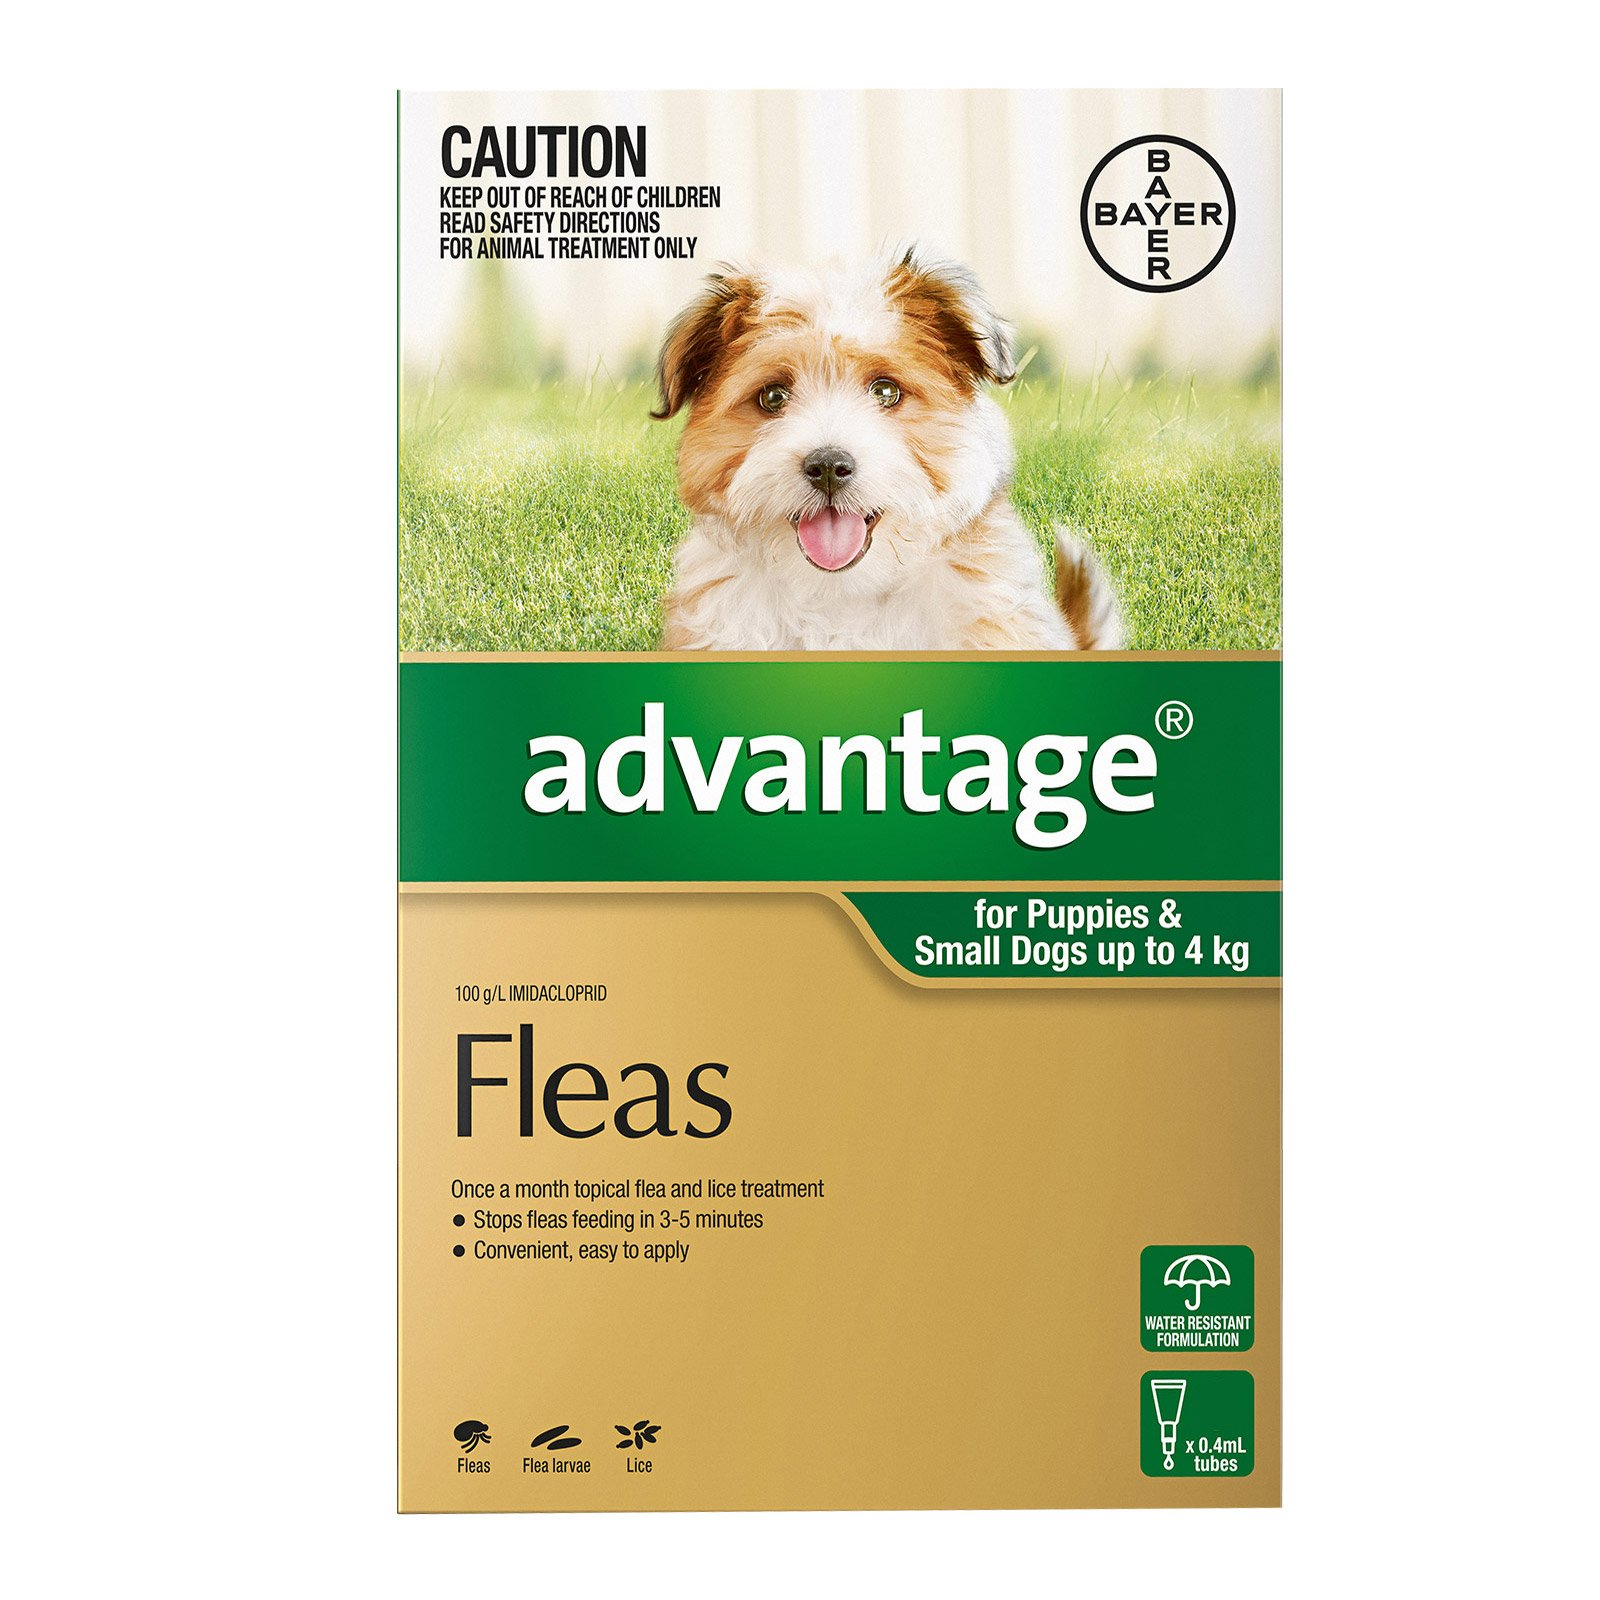 advantage-for-small-dogs-up-to-4kg-green-1.jpg